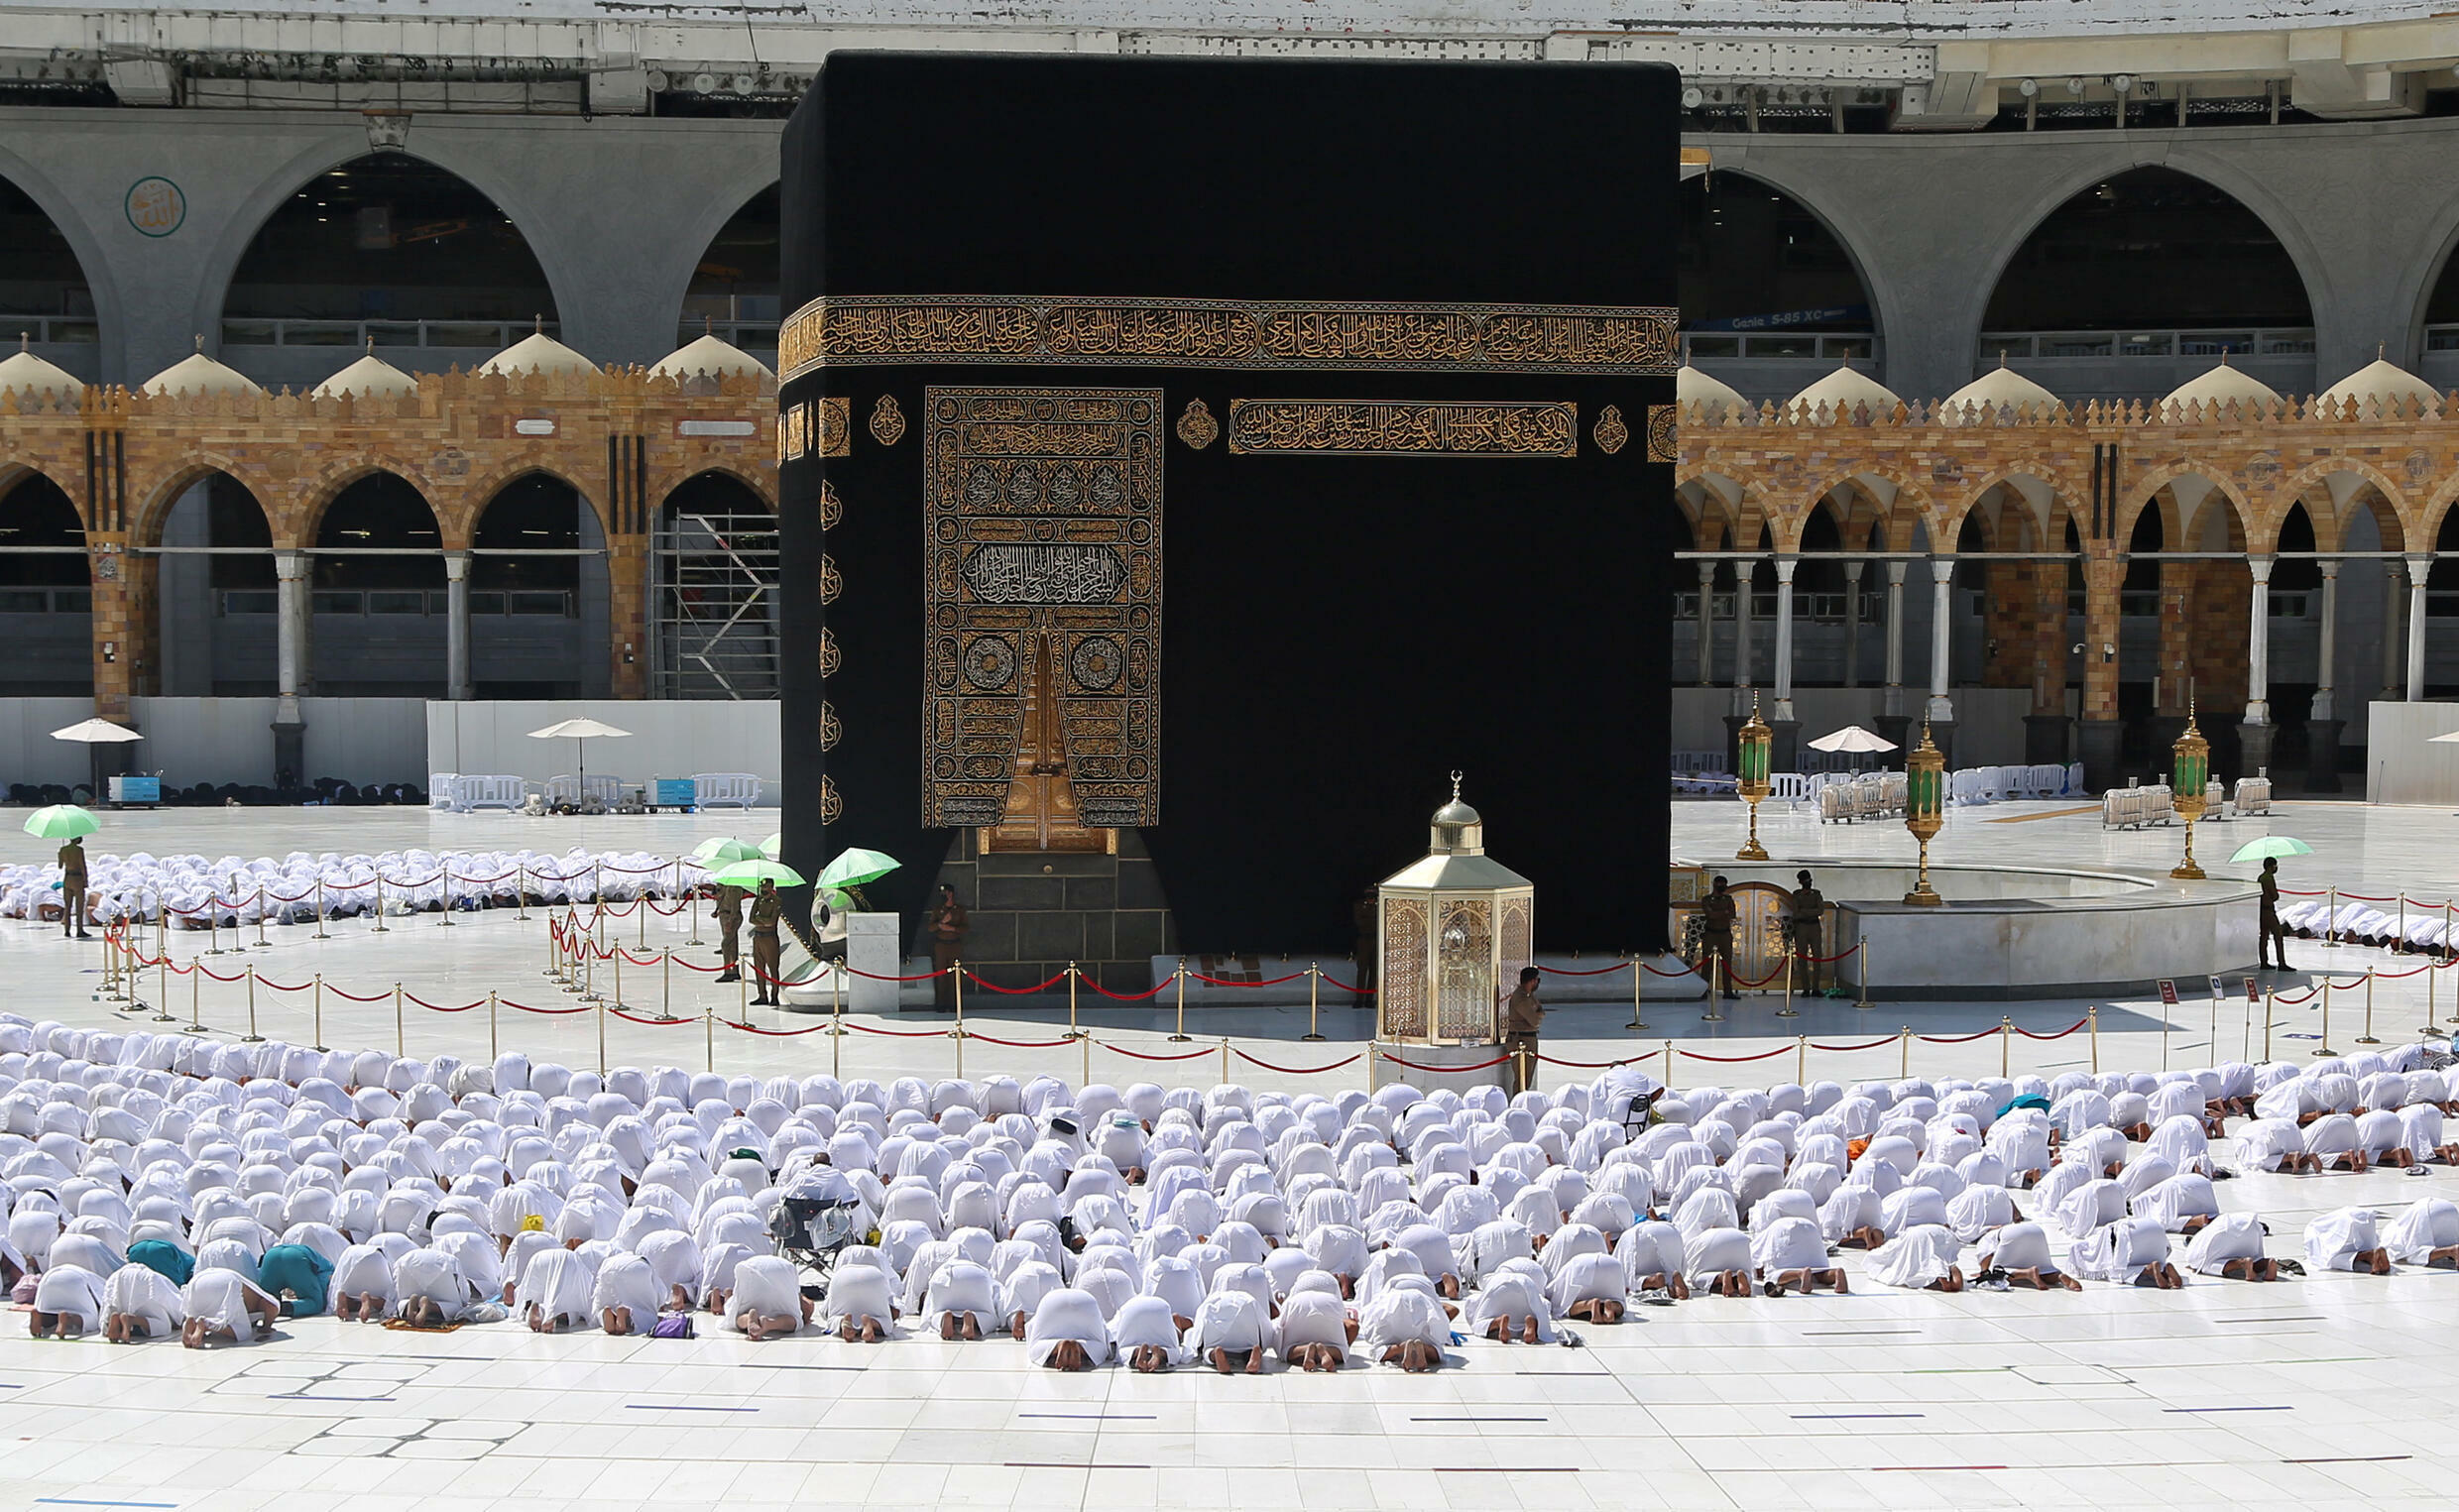 Normal service resumes: worshippers pray shoulder to shoulder at the Grand Mosque in the holy Saudi city of Mecca on Sunday, after social distancing rules were eased